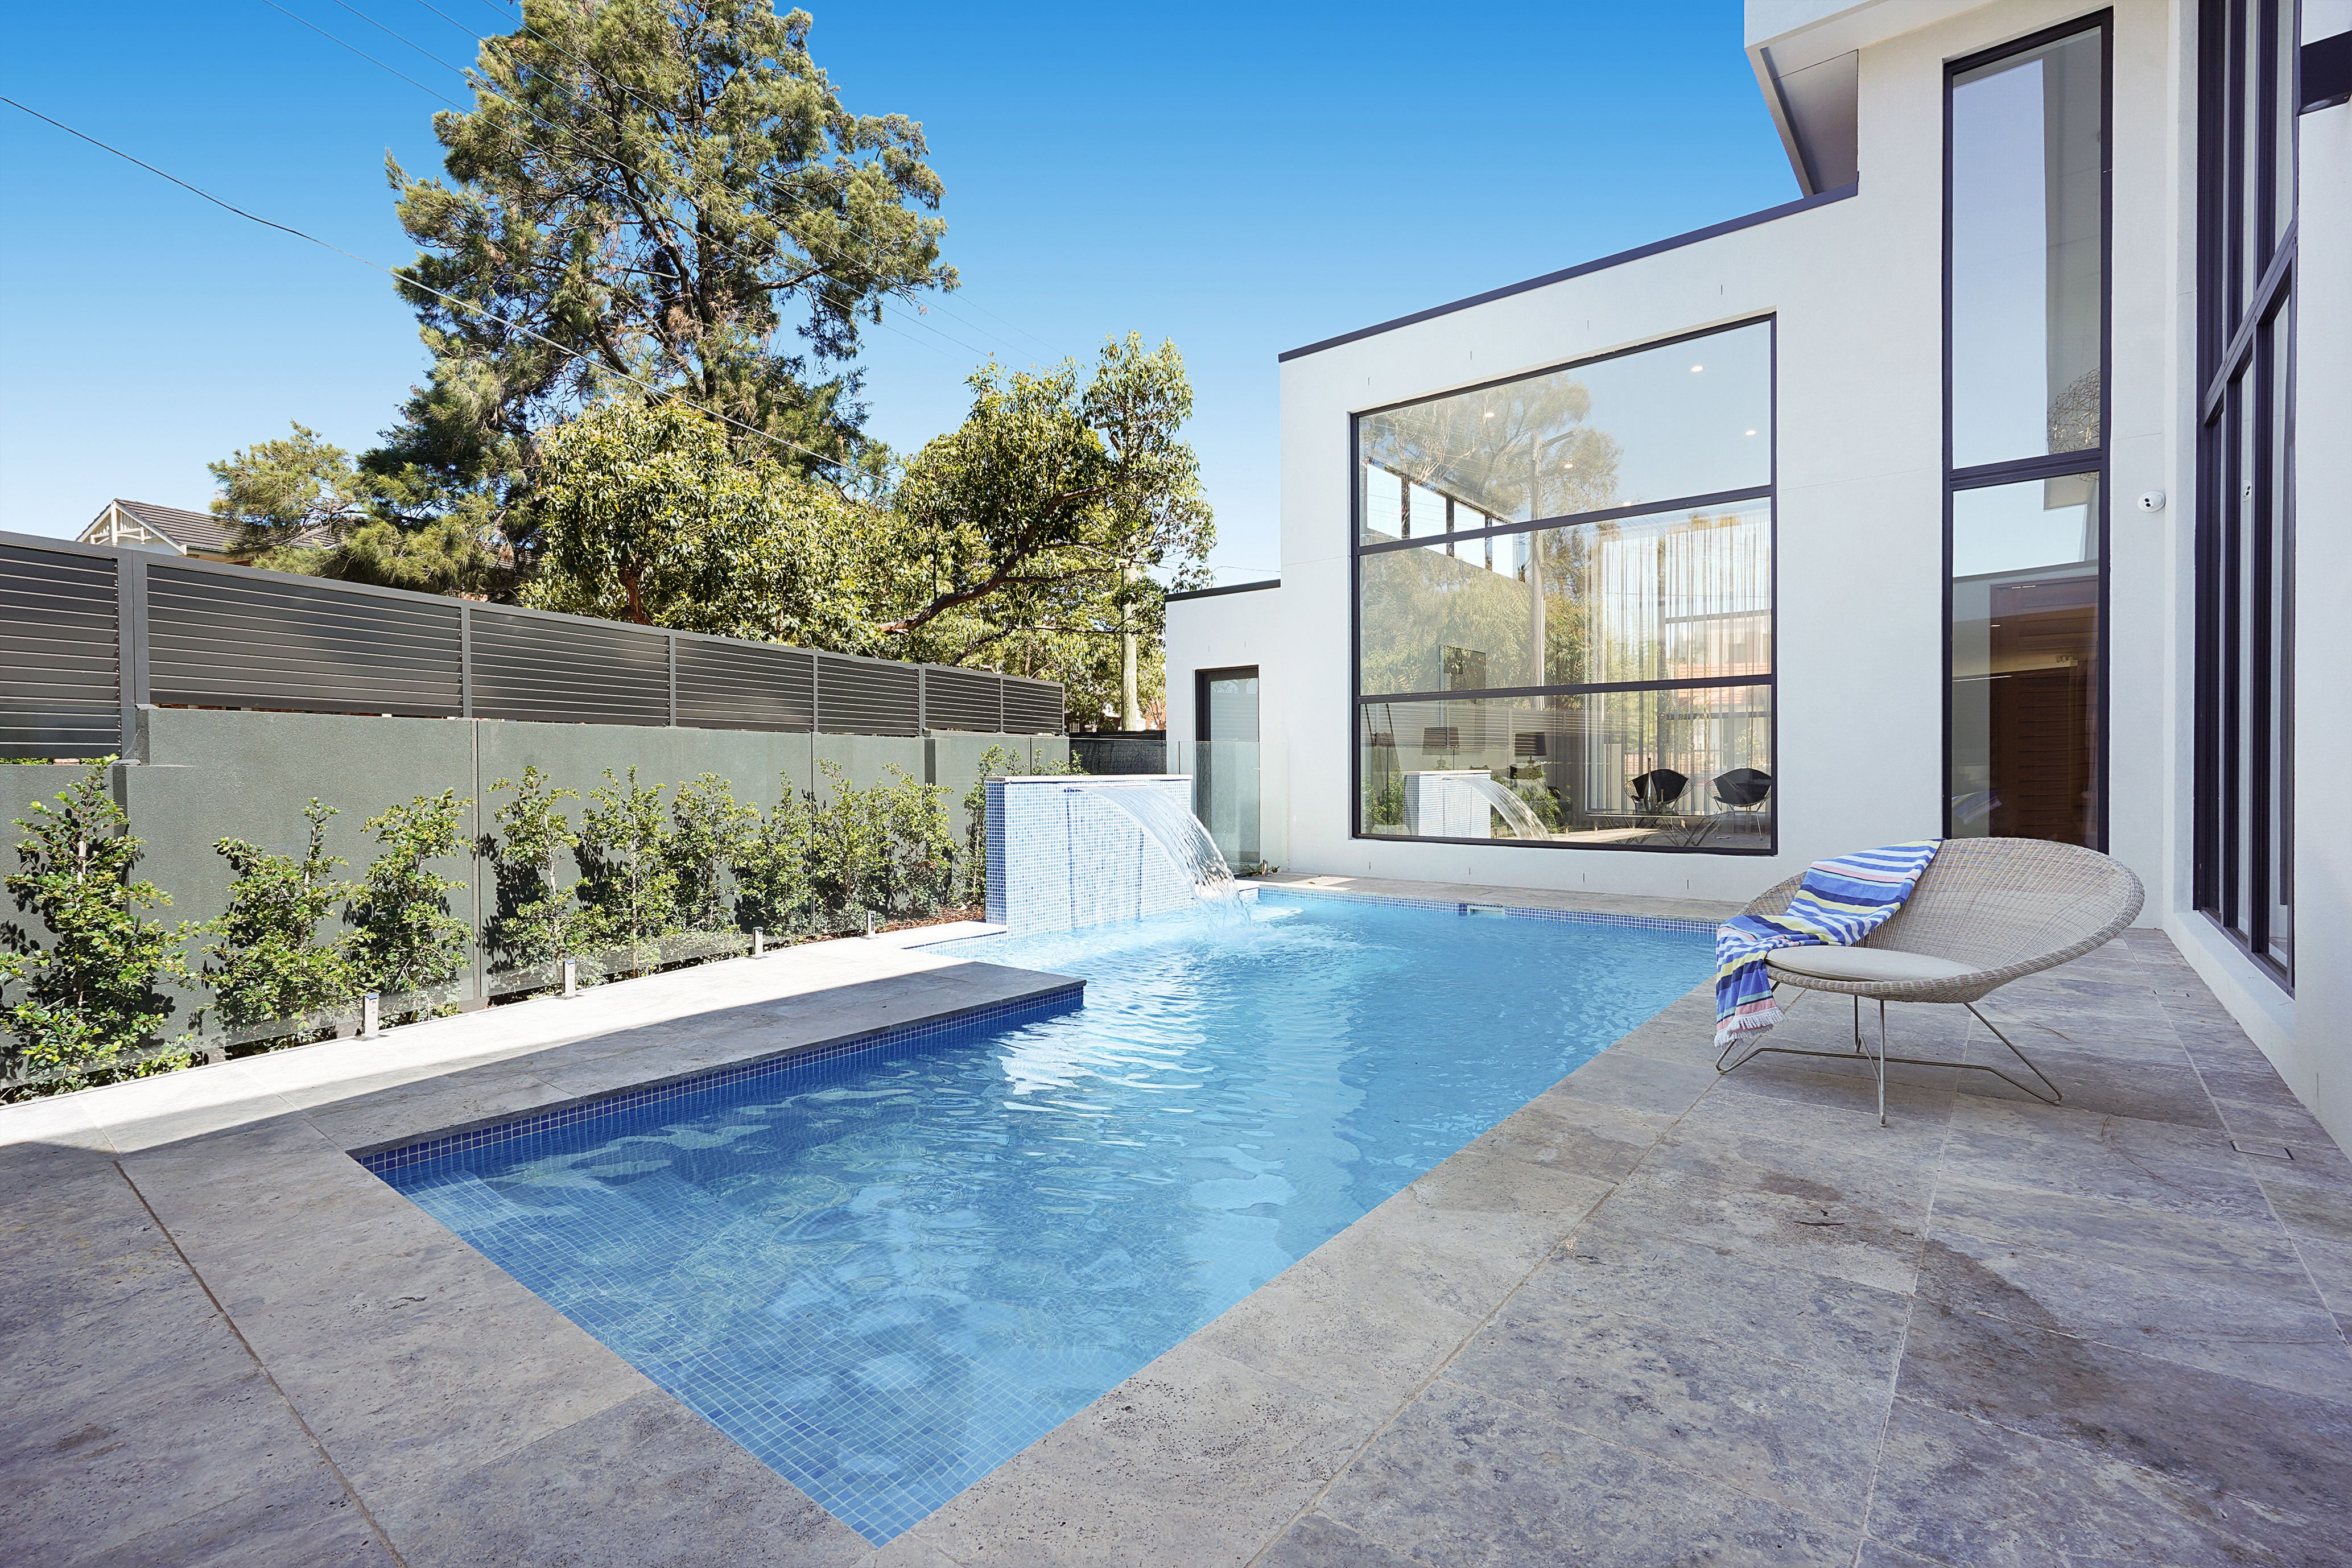 1a Myall Crescent, Strathfield NSW 2135